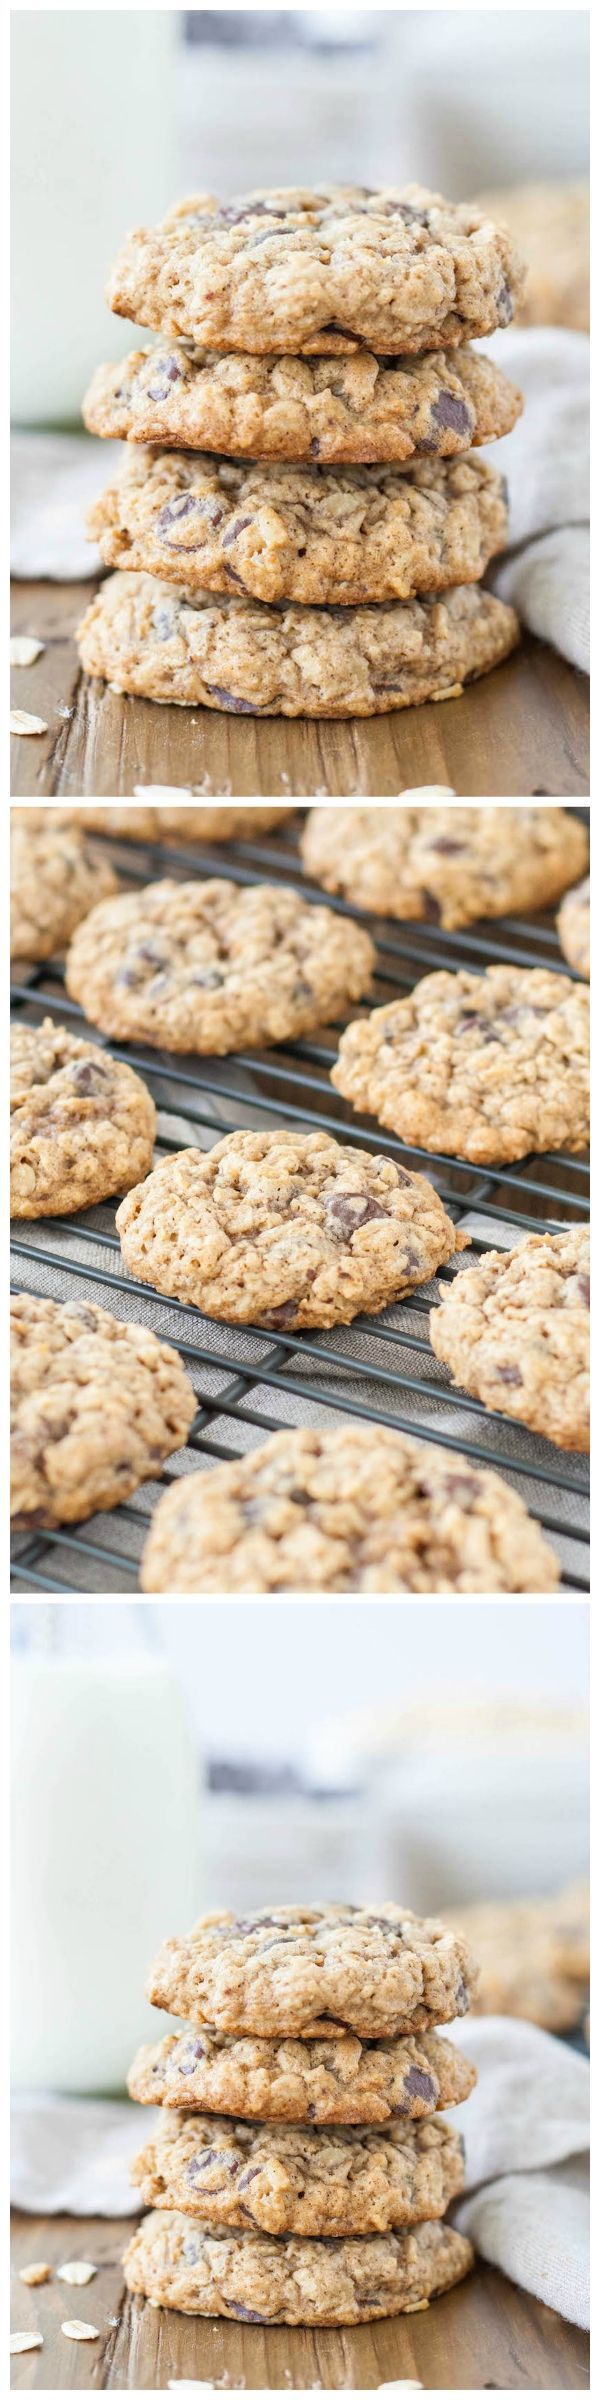 The BEST oatmeal chocolate chip cookies recipe!  These will melt in your mouth and are perfectly soft and chewy!!